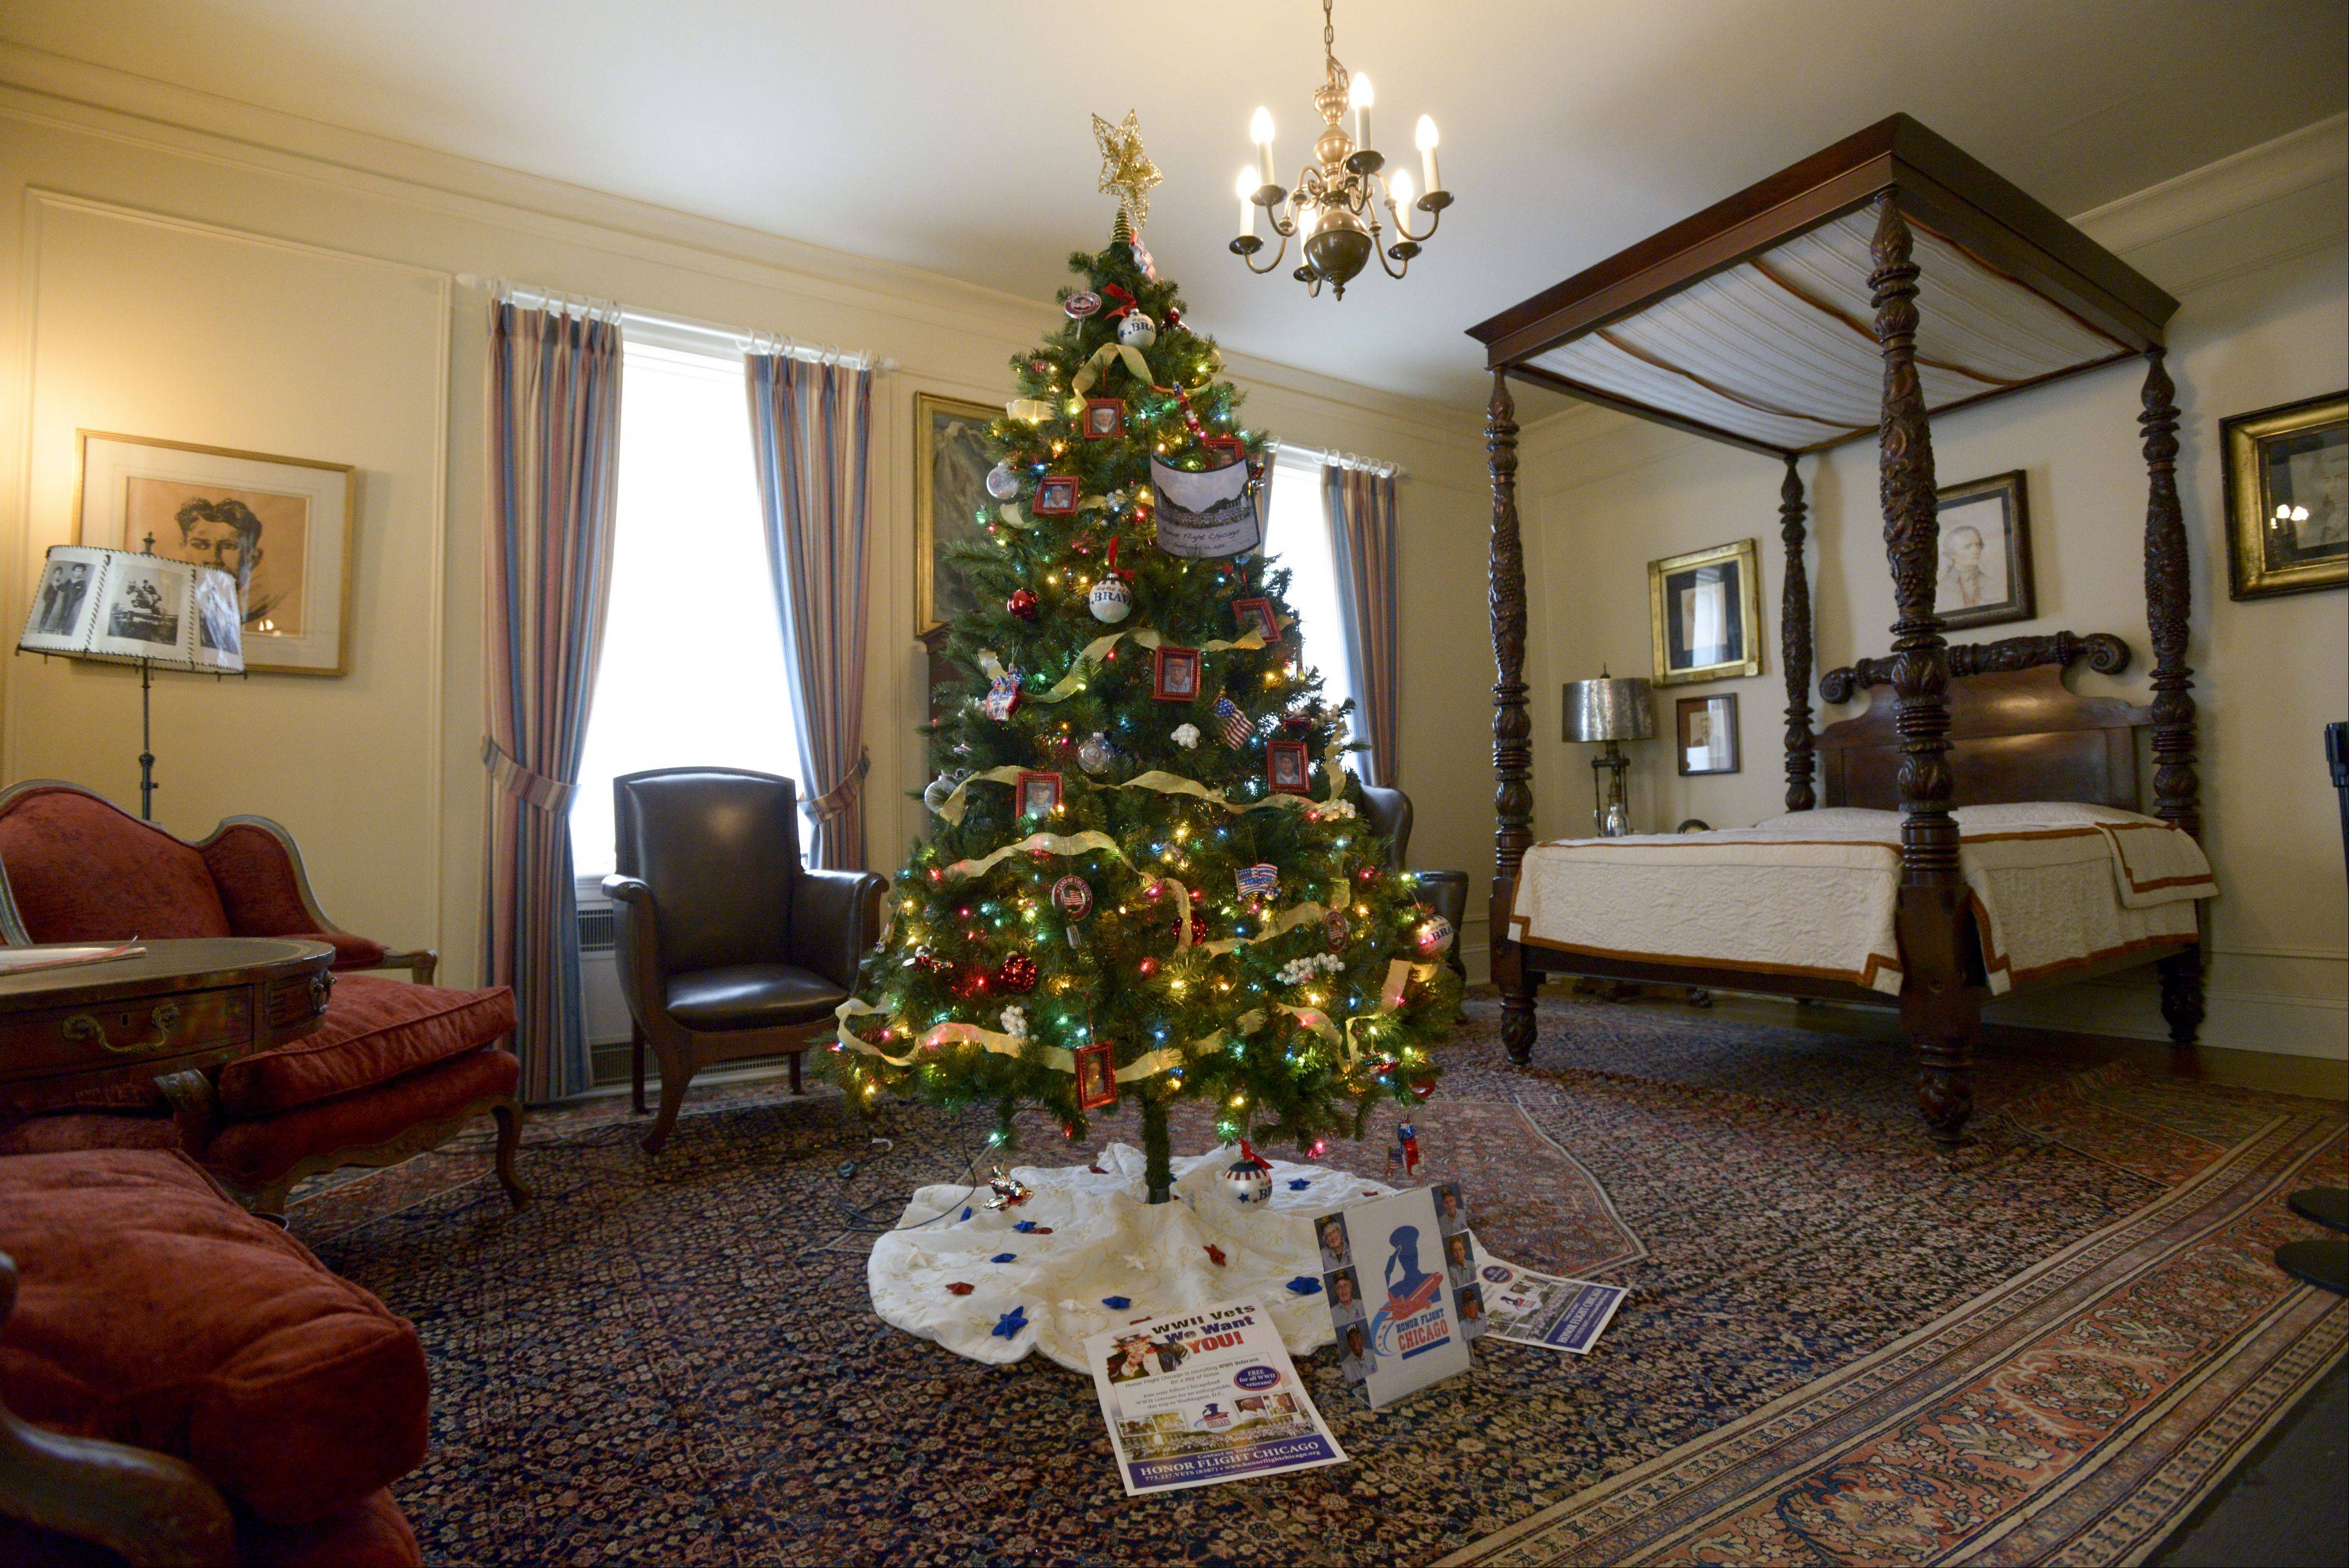 A Christmas tree decorated by volunteers from Honor Flight Chicago, exhibited in Col. Robert McCormick's bedroom, is one of seven such trees on display through the end of December at the McCormick Museum in Wheaton's Cantigny Park. All the themed trees were decorated by nonprofit groups.